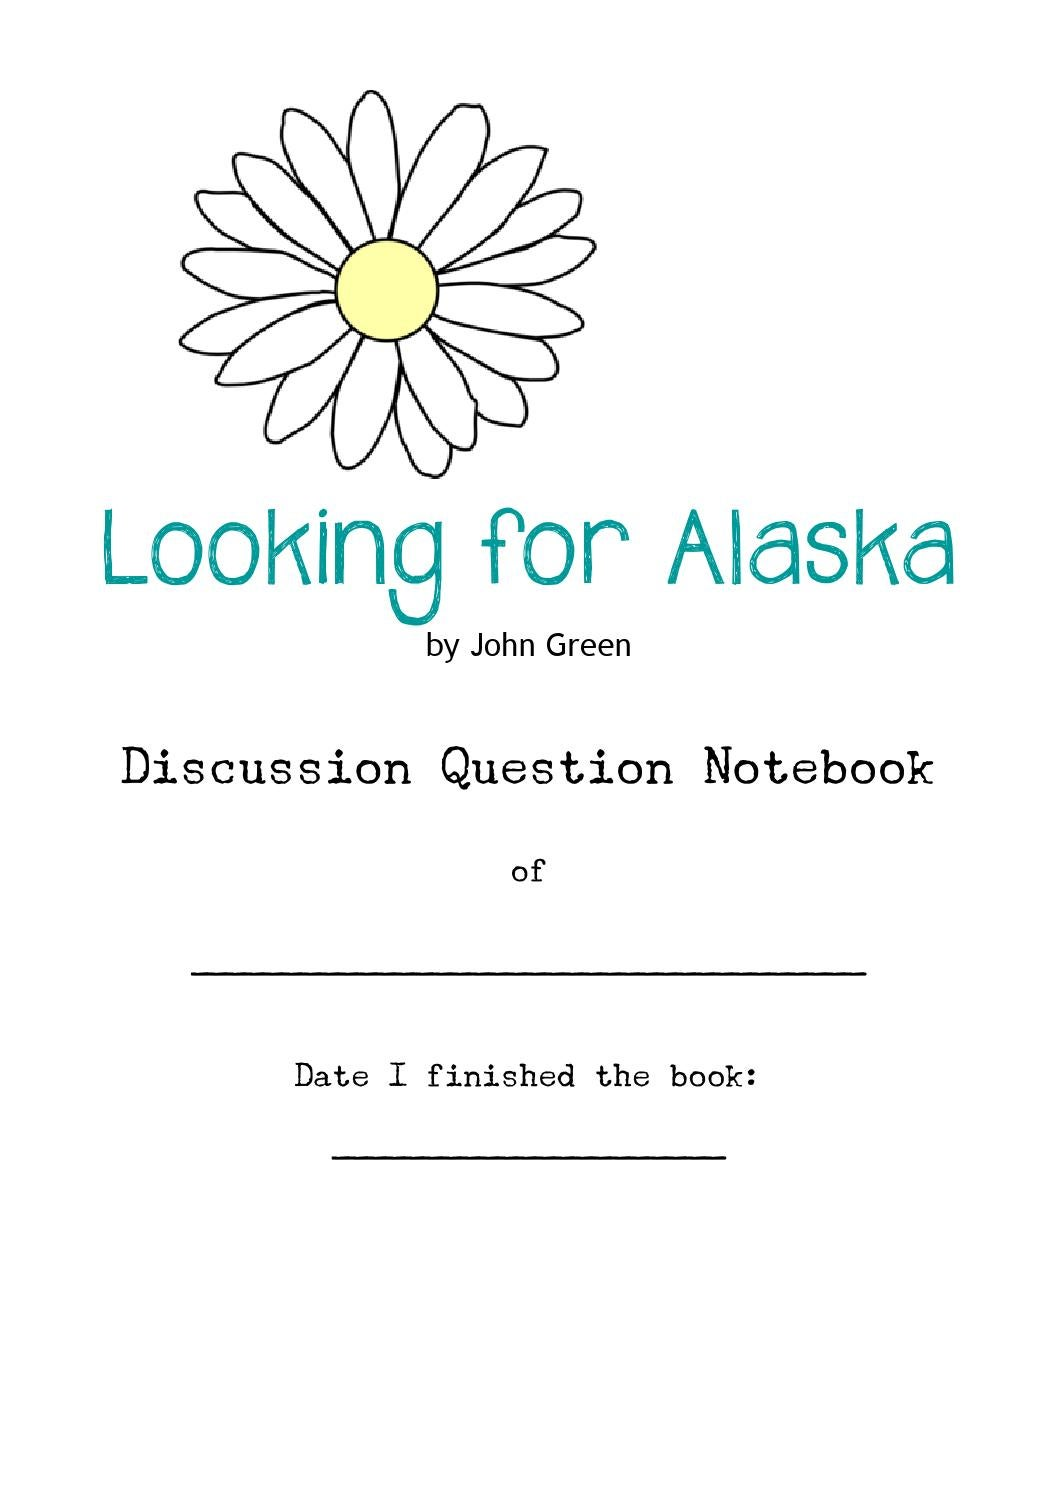 Discussion Question Notebook for Looking for Alaska by